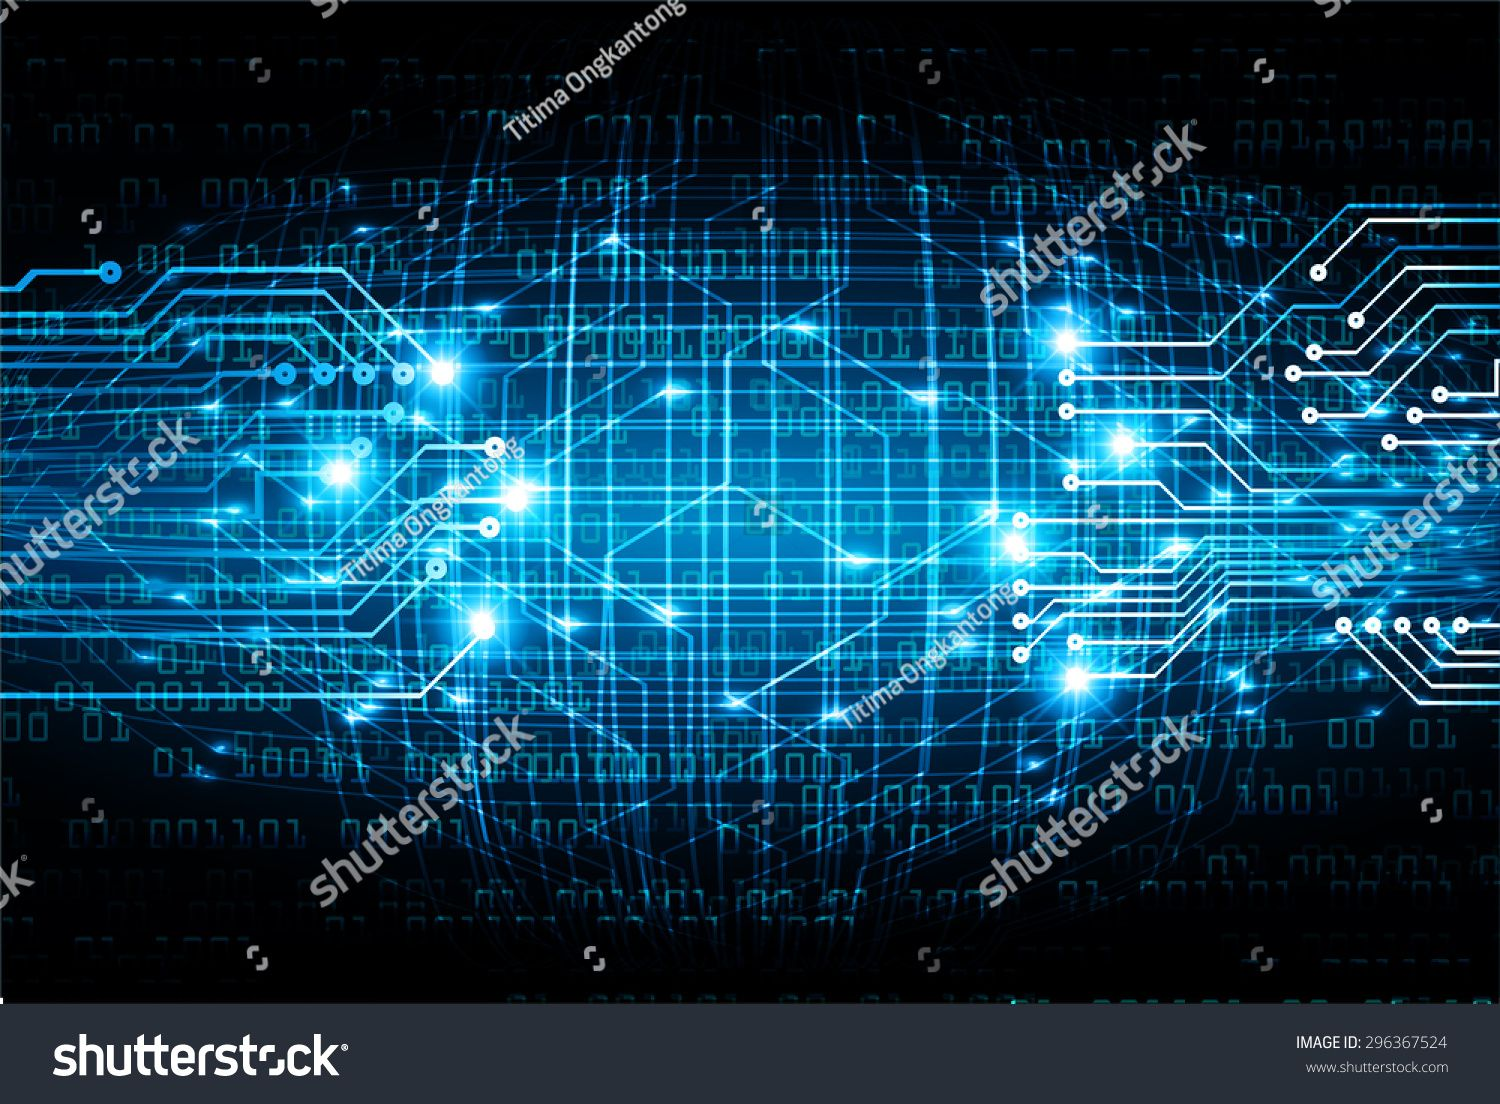 Dark Blue Color Light Abstract Technology Background For Computer Graphic Website Internet And Business Cir Dark Blue Color Technology Background Light Colors